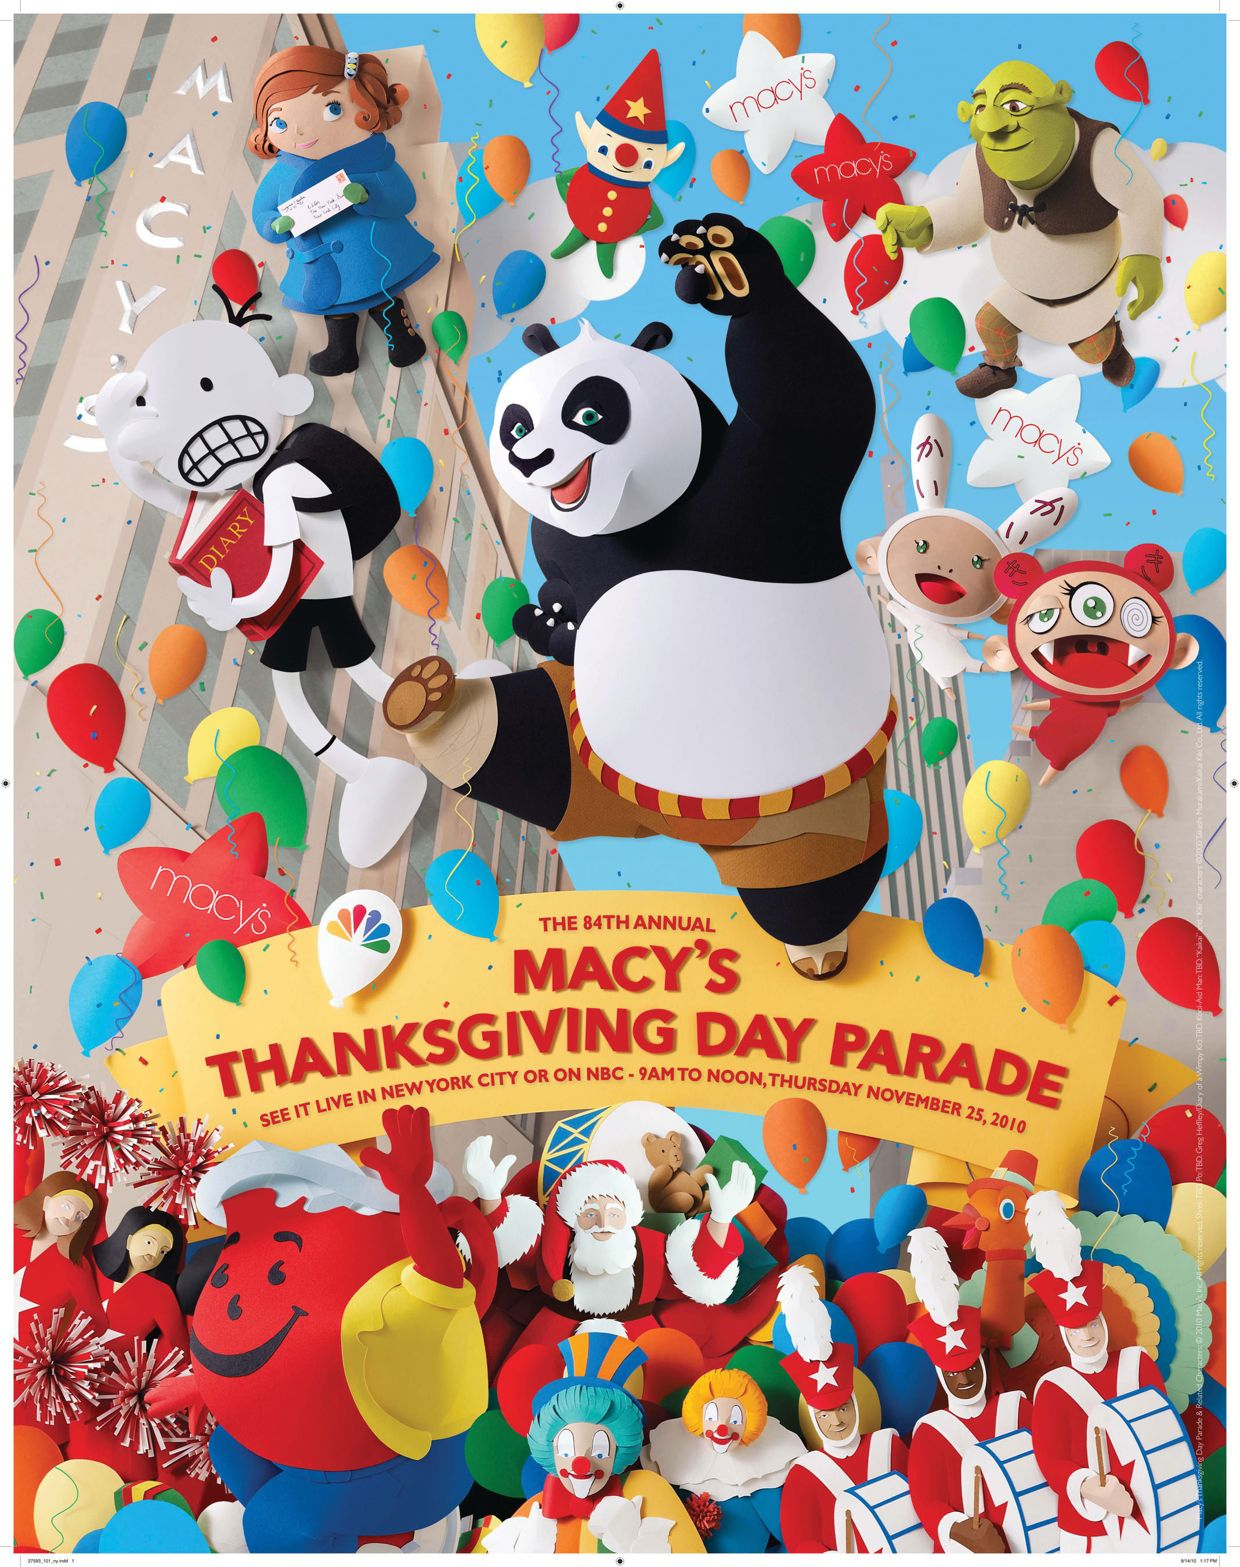 Macy S Thanksgiving Day Parade Poster Image Macys Thanksgiving Parade Macy S Thanksgiving Day Parade Thanksgiving Day Parade